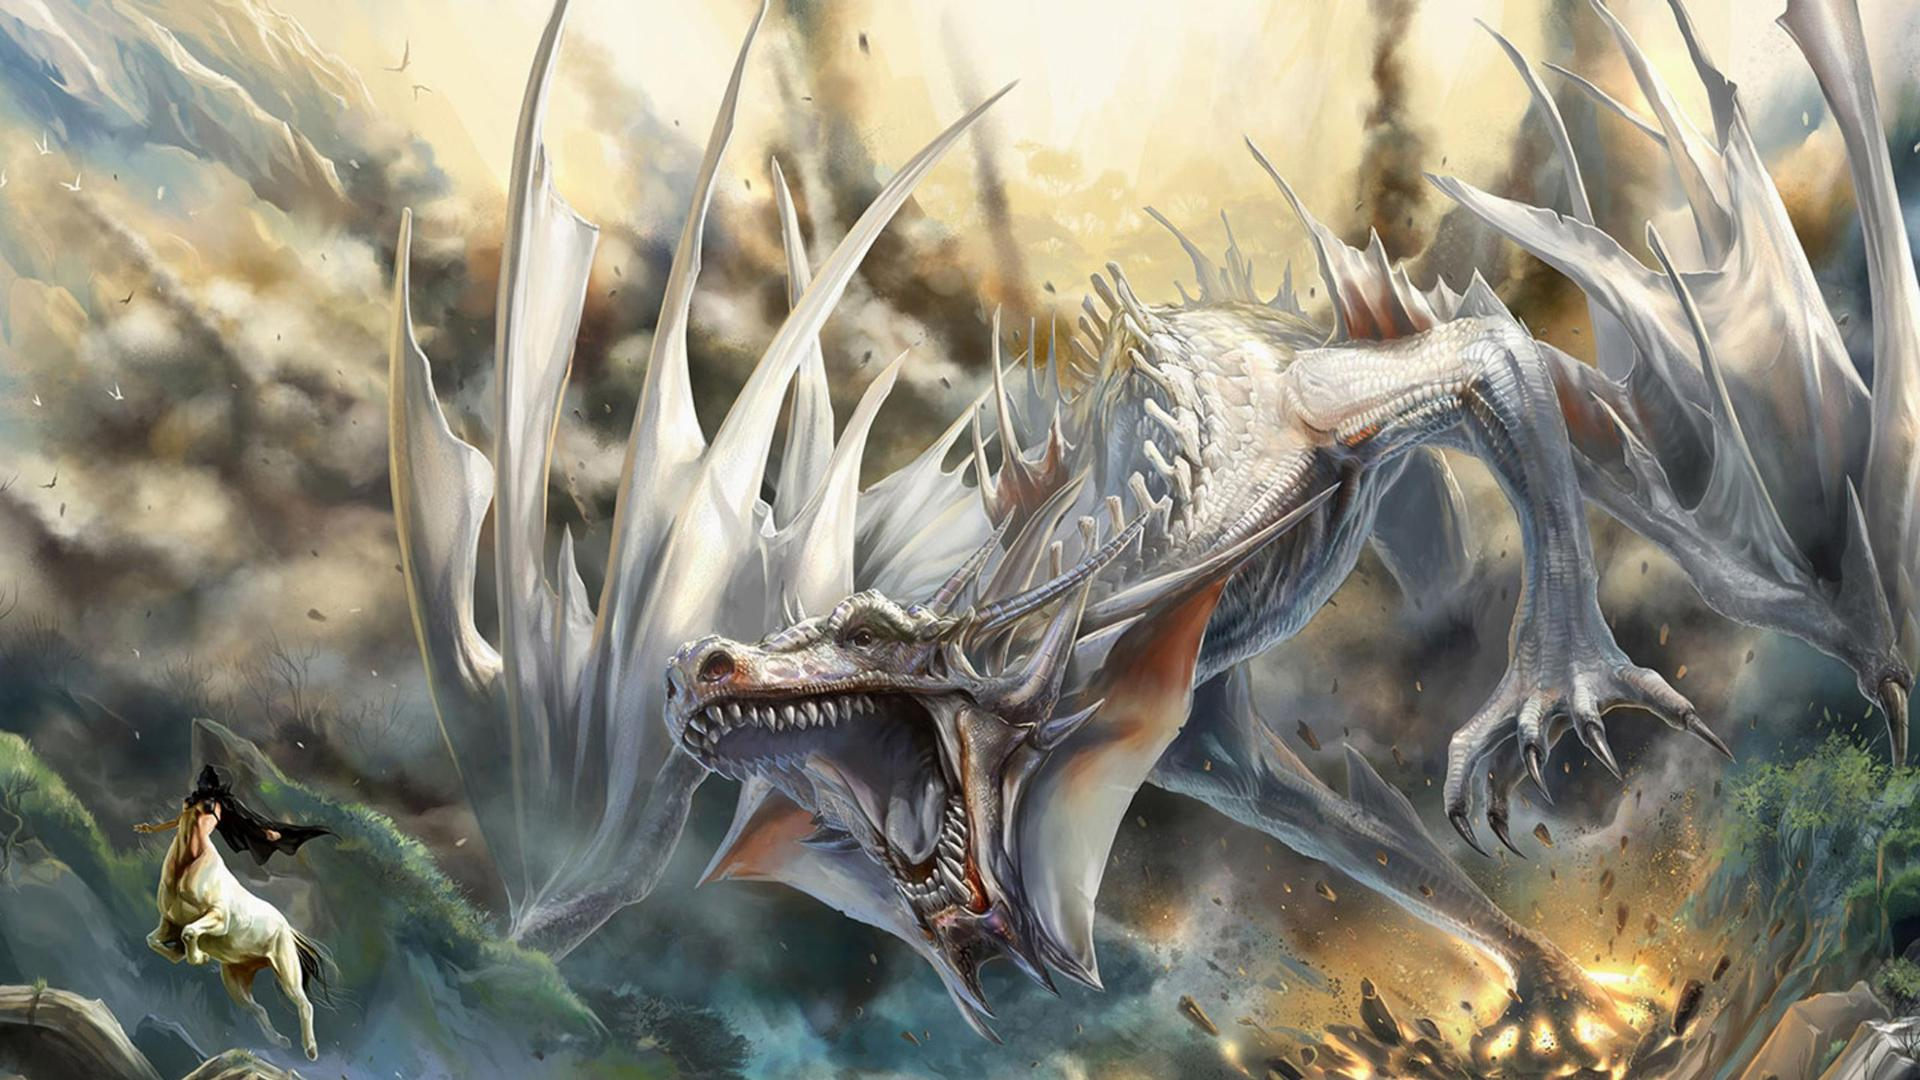 Hd White Dragon Wallpapers Wallpaper Cave